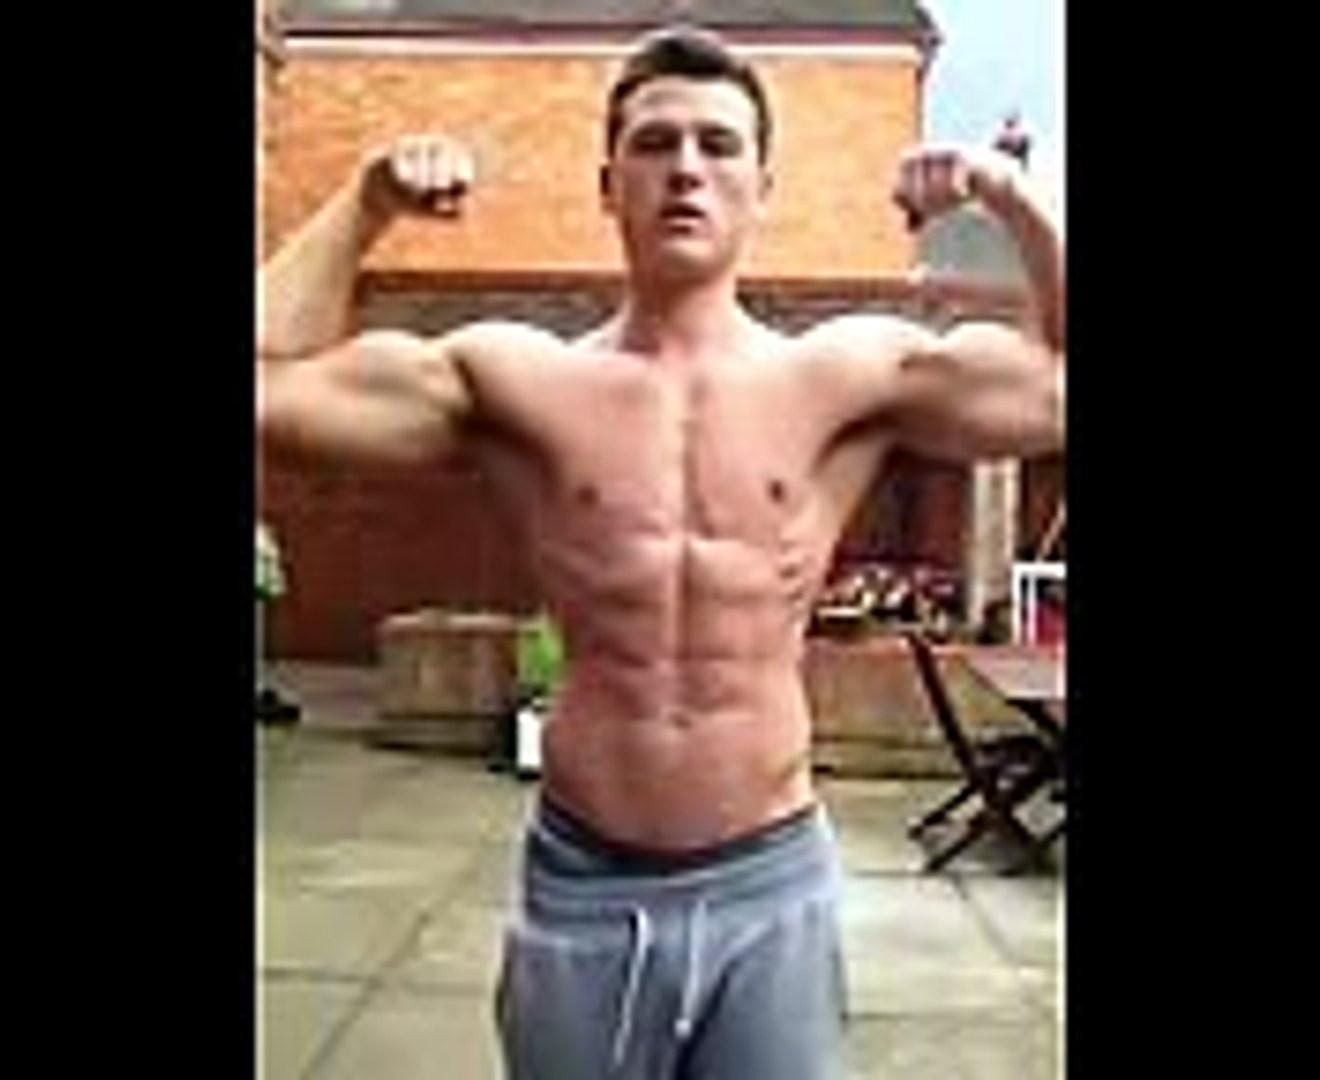 Fitness Muscle Building UNREAL Teen 6 pack abs Flexing Preview by fitness Lewis Morgan